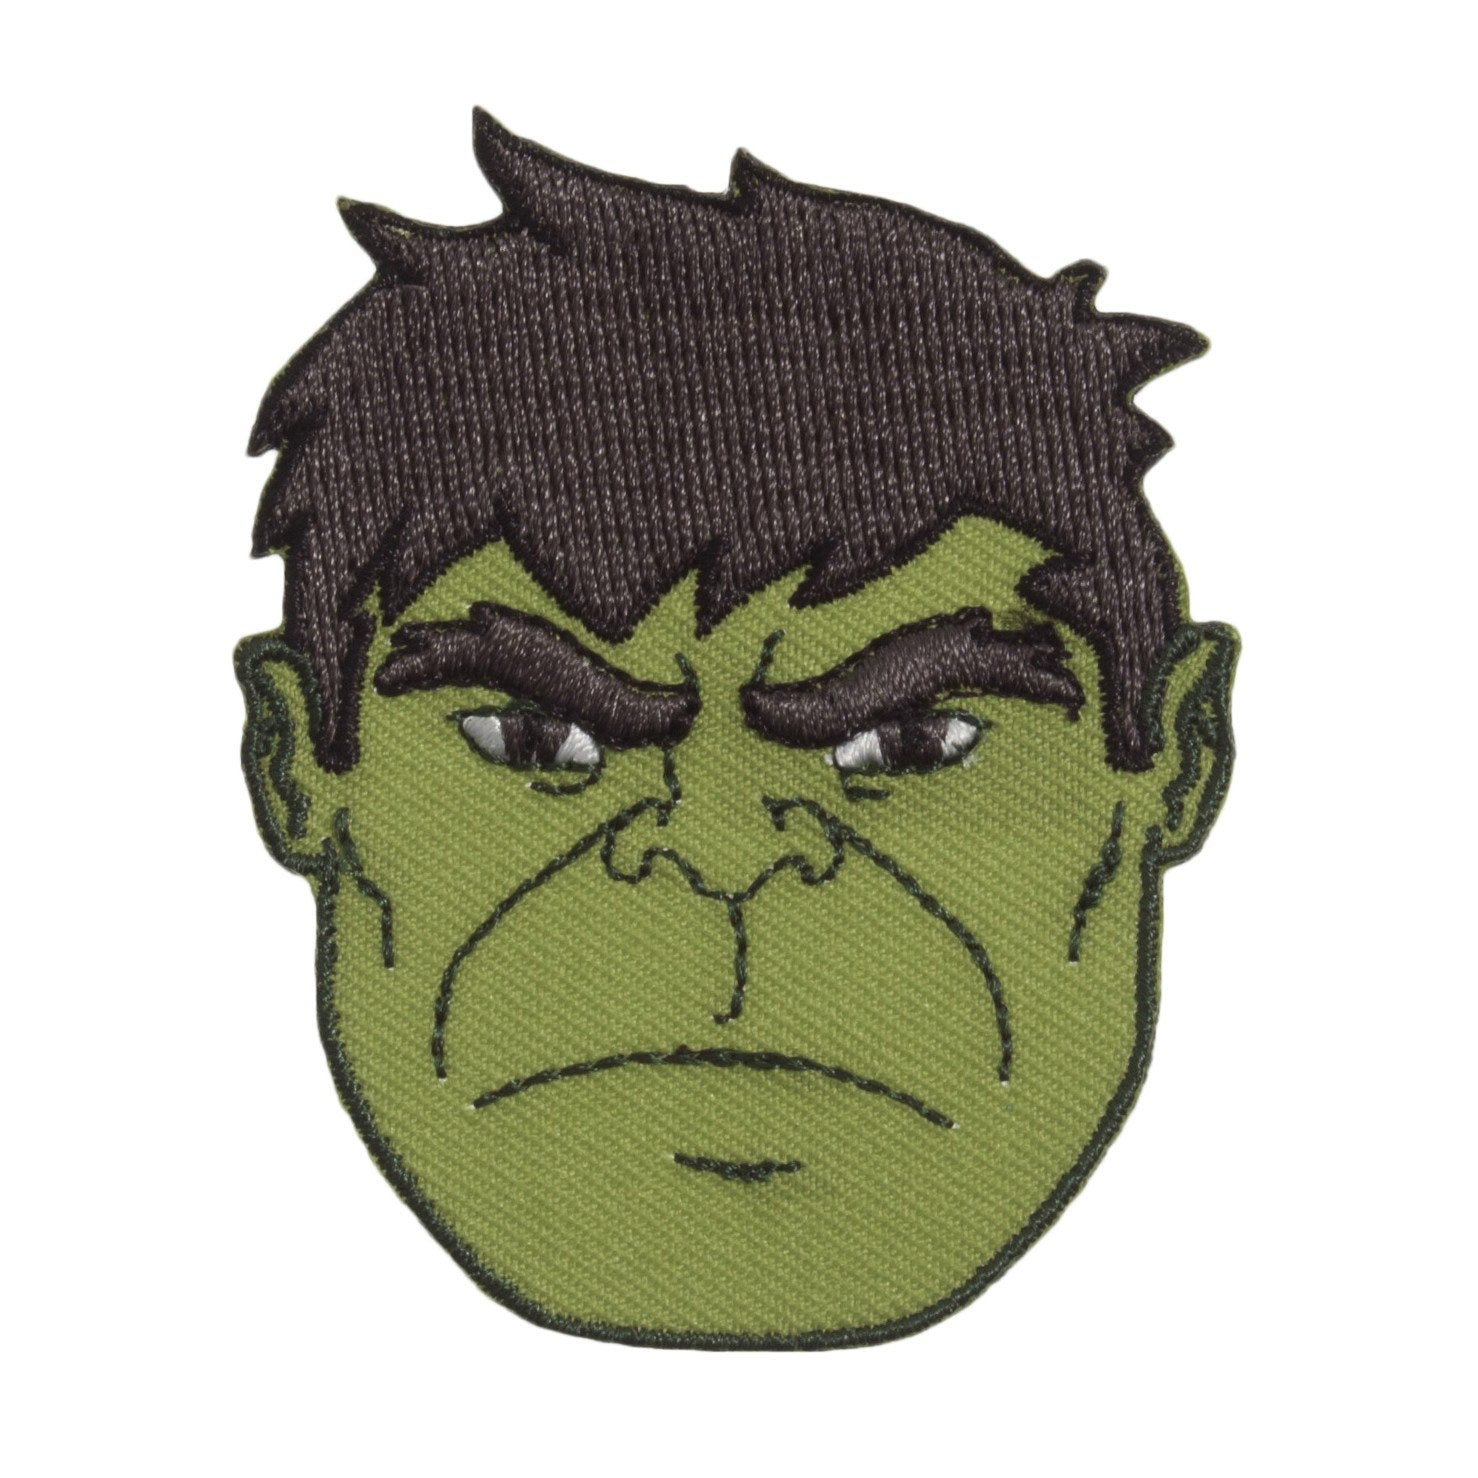 hulk face images images galleries with a bite. Black Bedroom Furniture Sets. Home Design Ideas